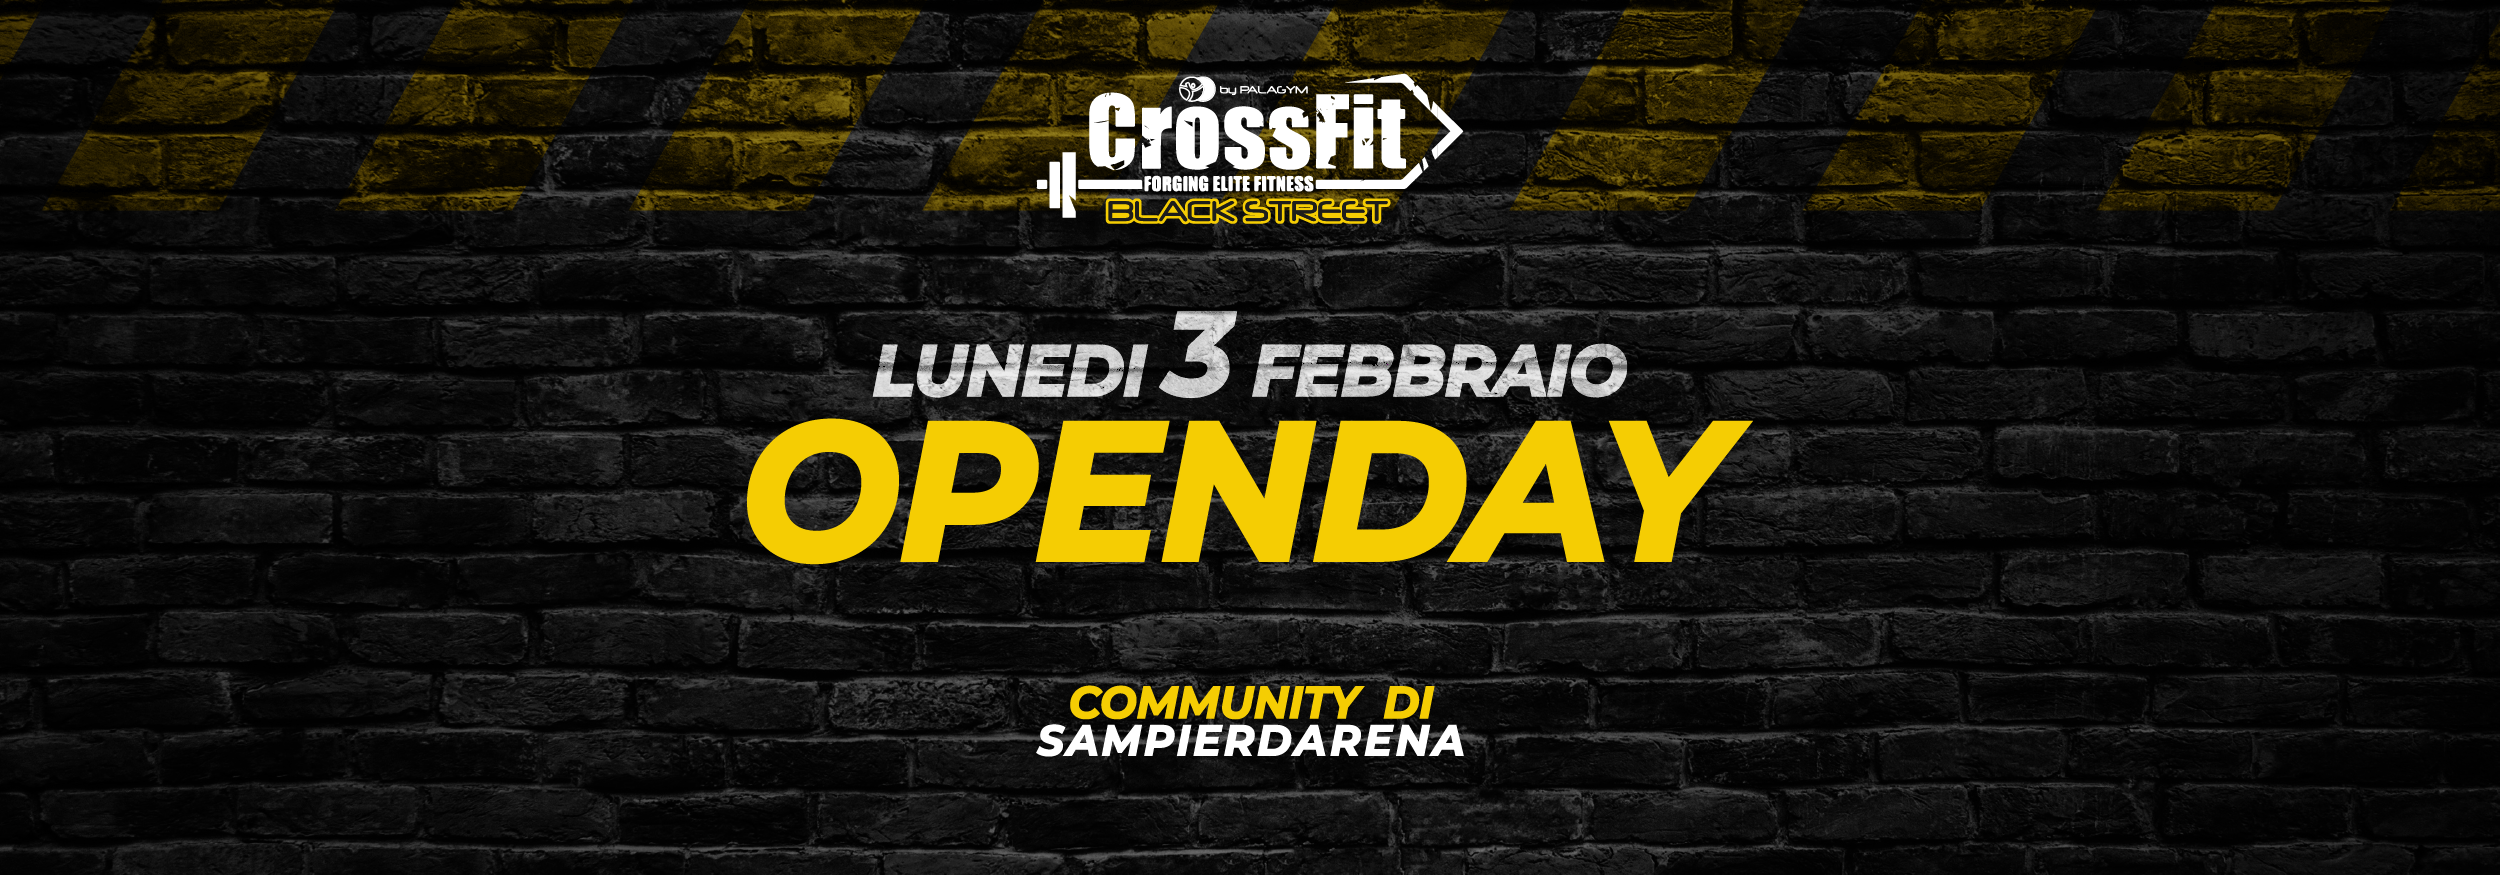 open day cross fit black street header sito